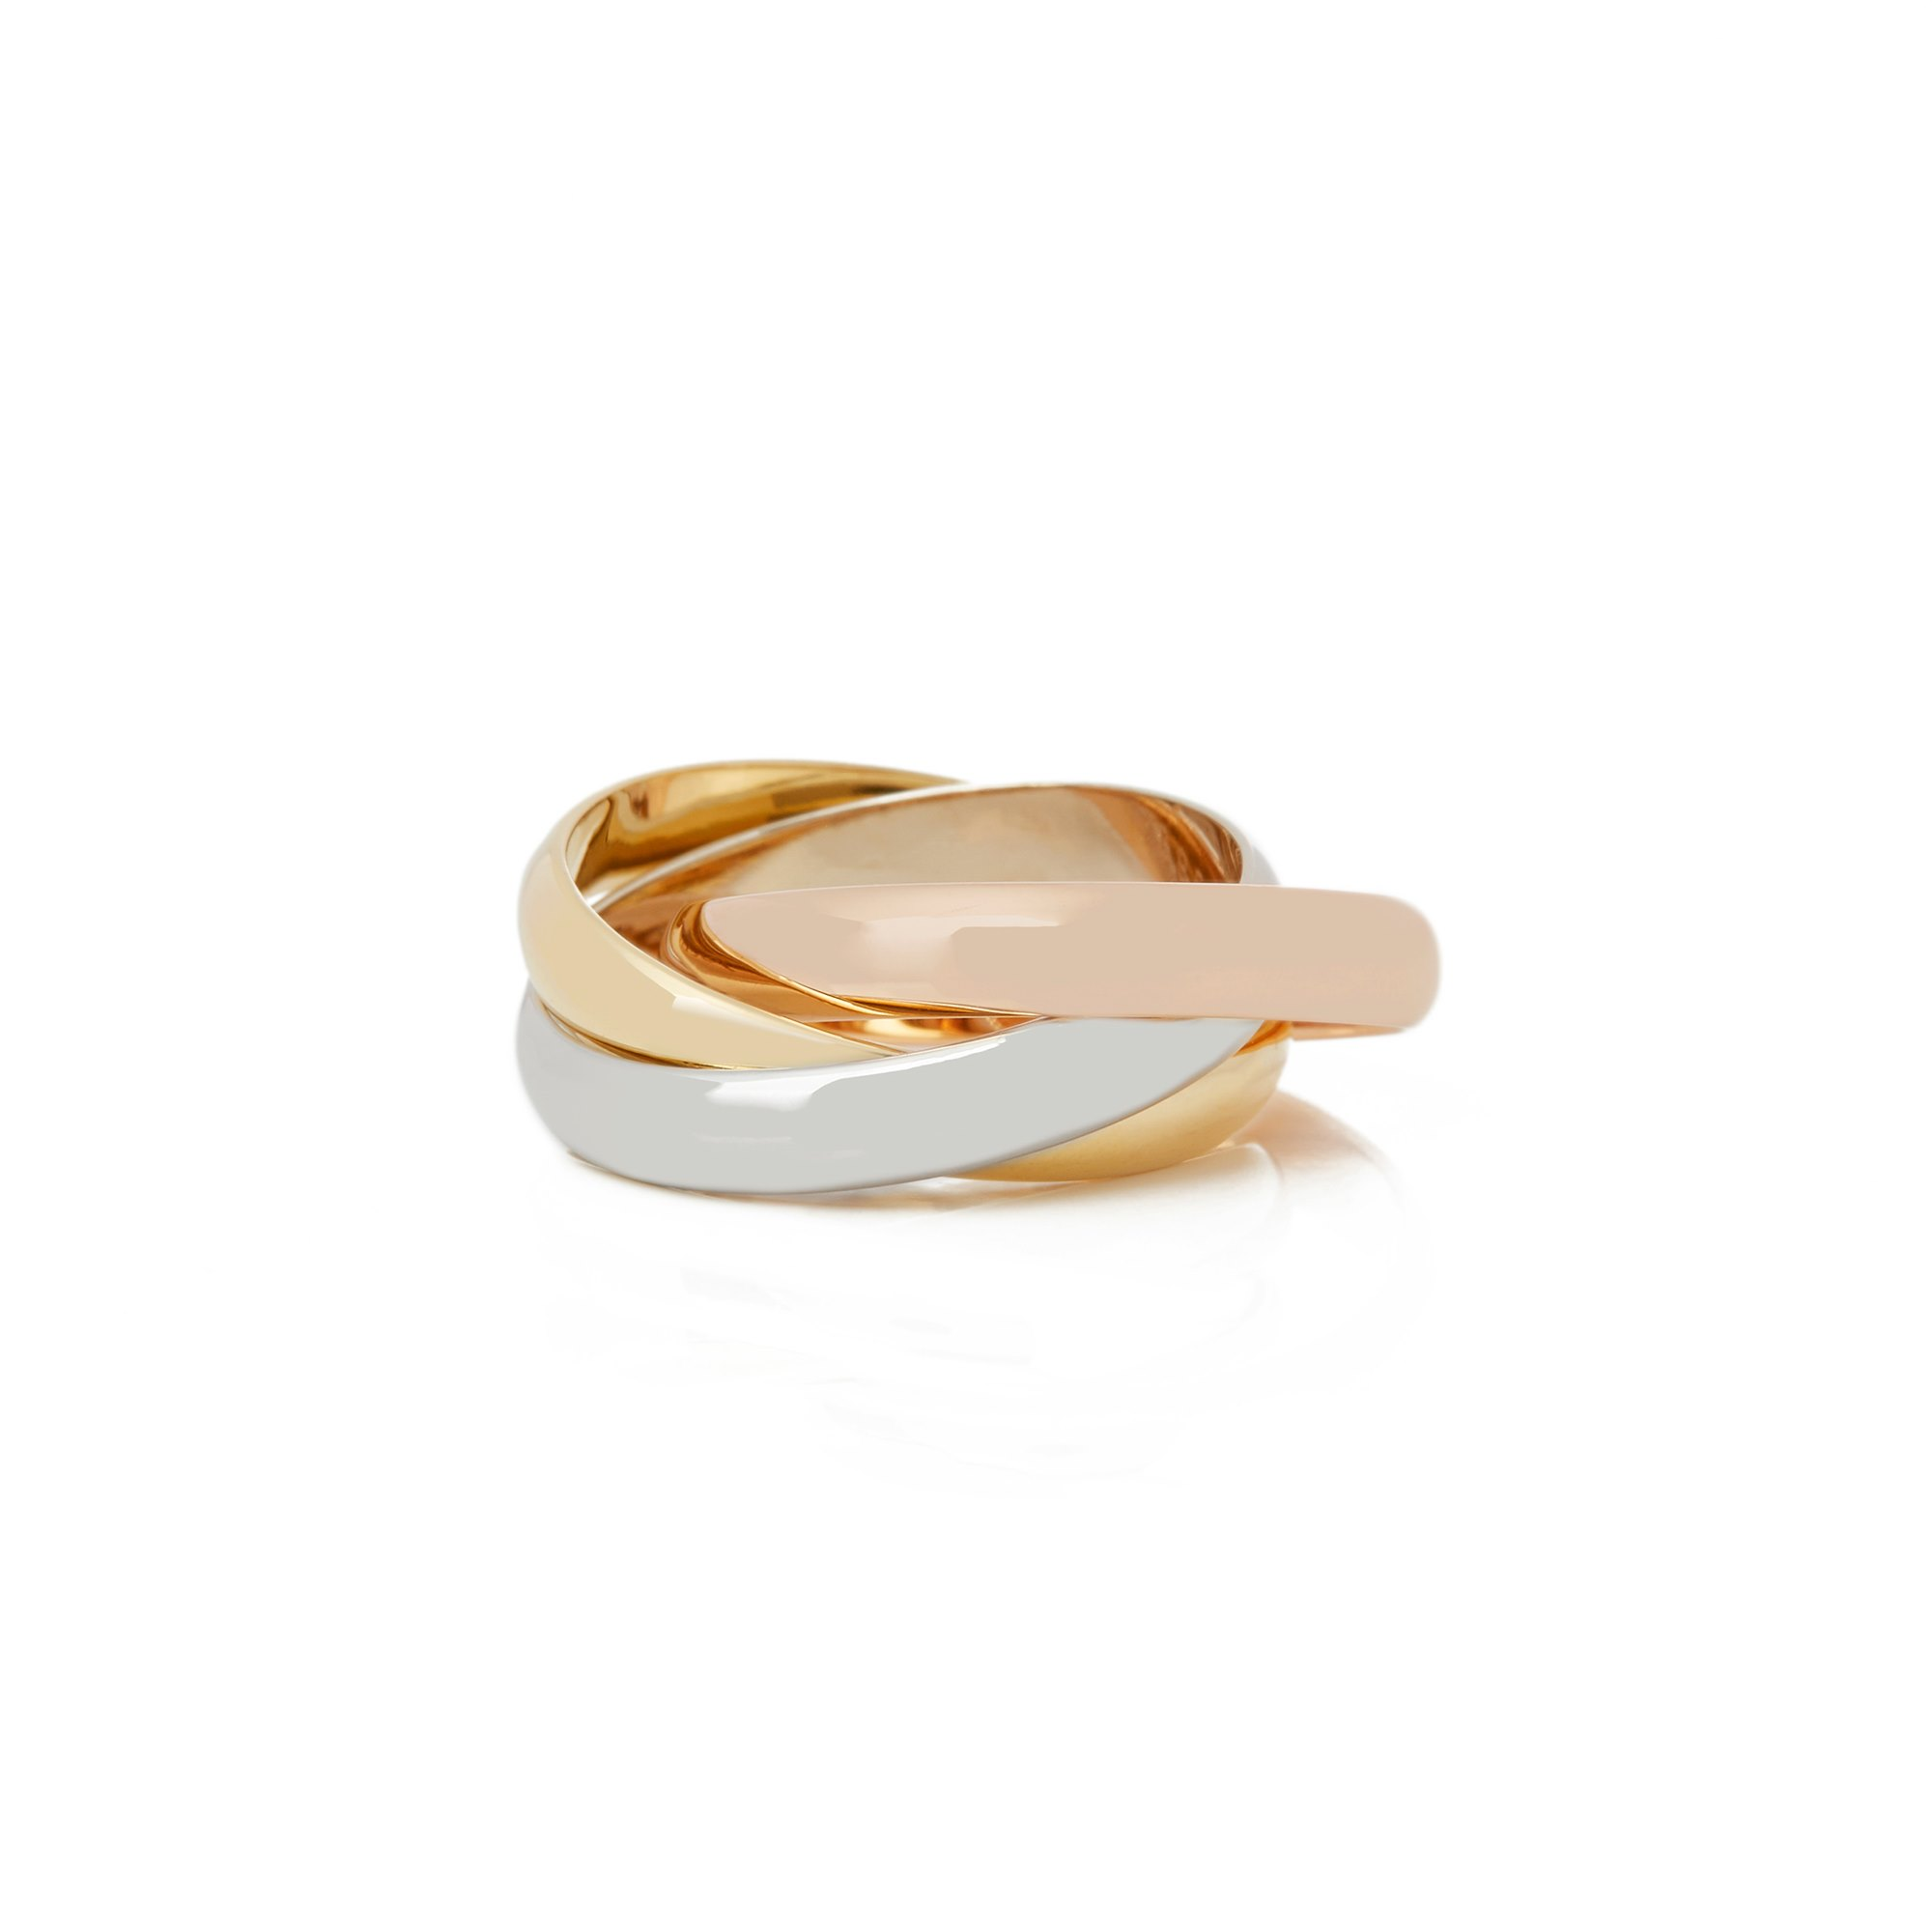 Cartier 18k Yellow, White and Rose Trinity Ring